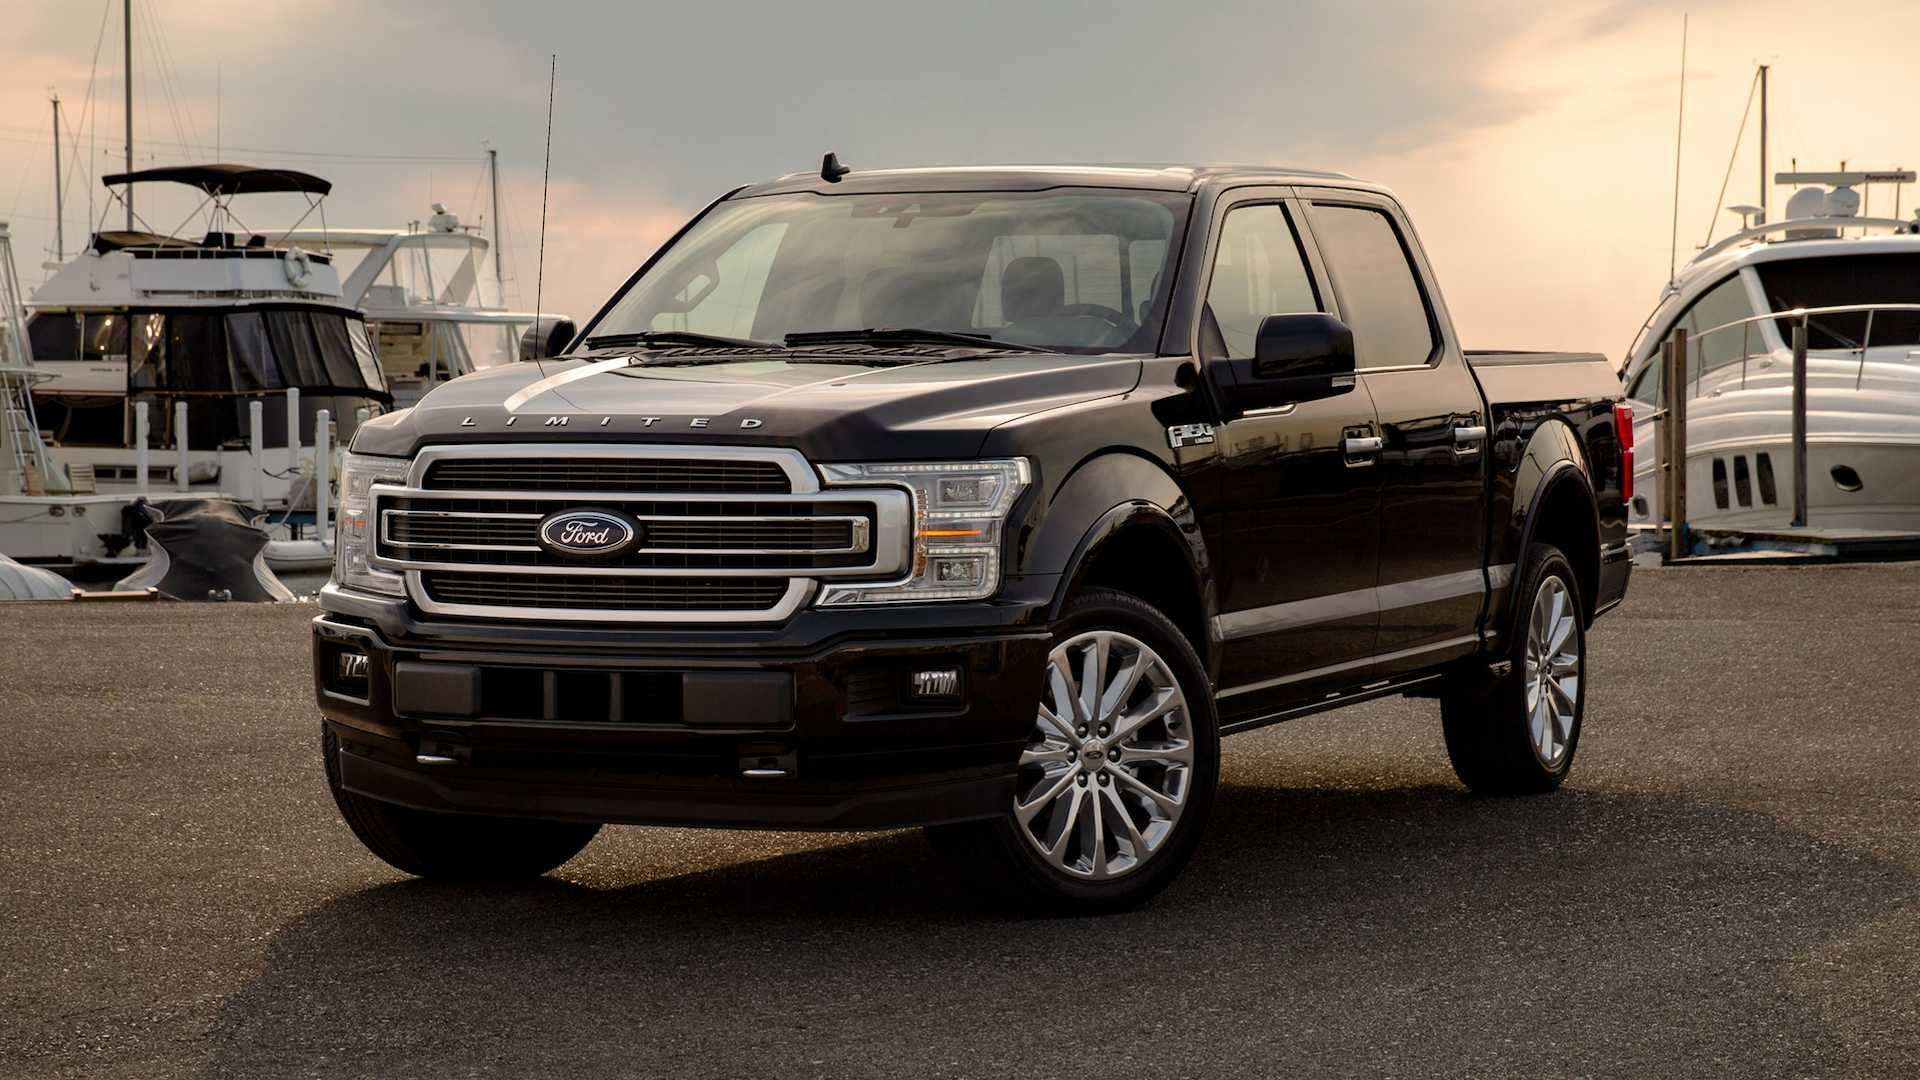 53 All New 2019 Ford F 150 History by 2019 Ford F 150